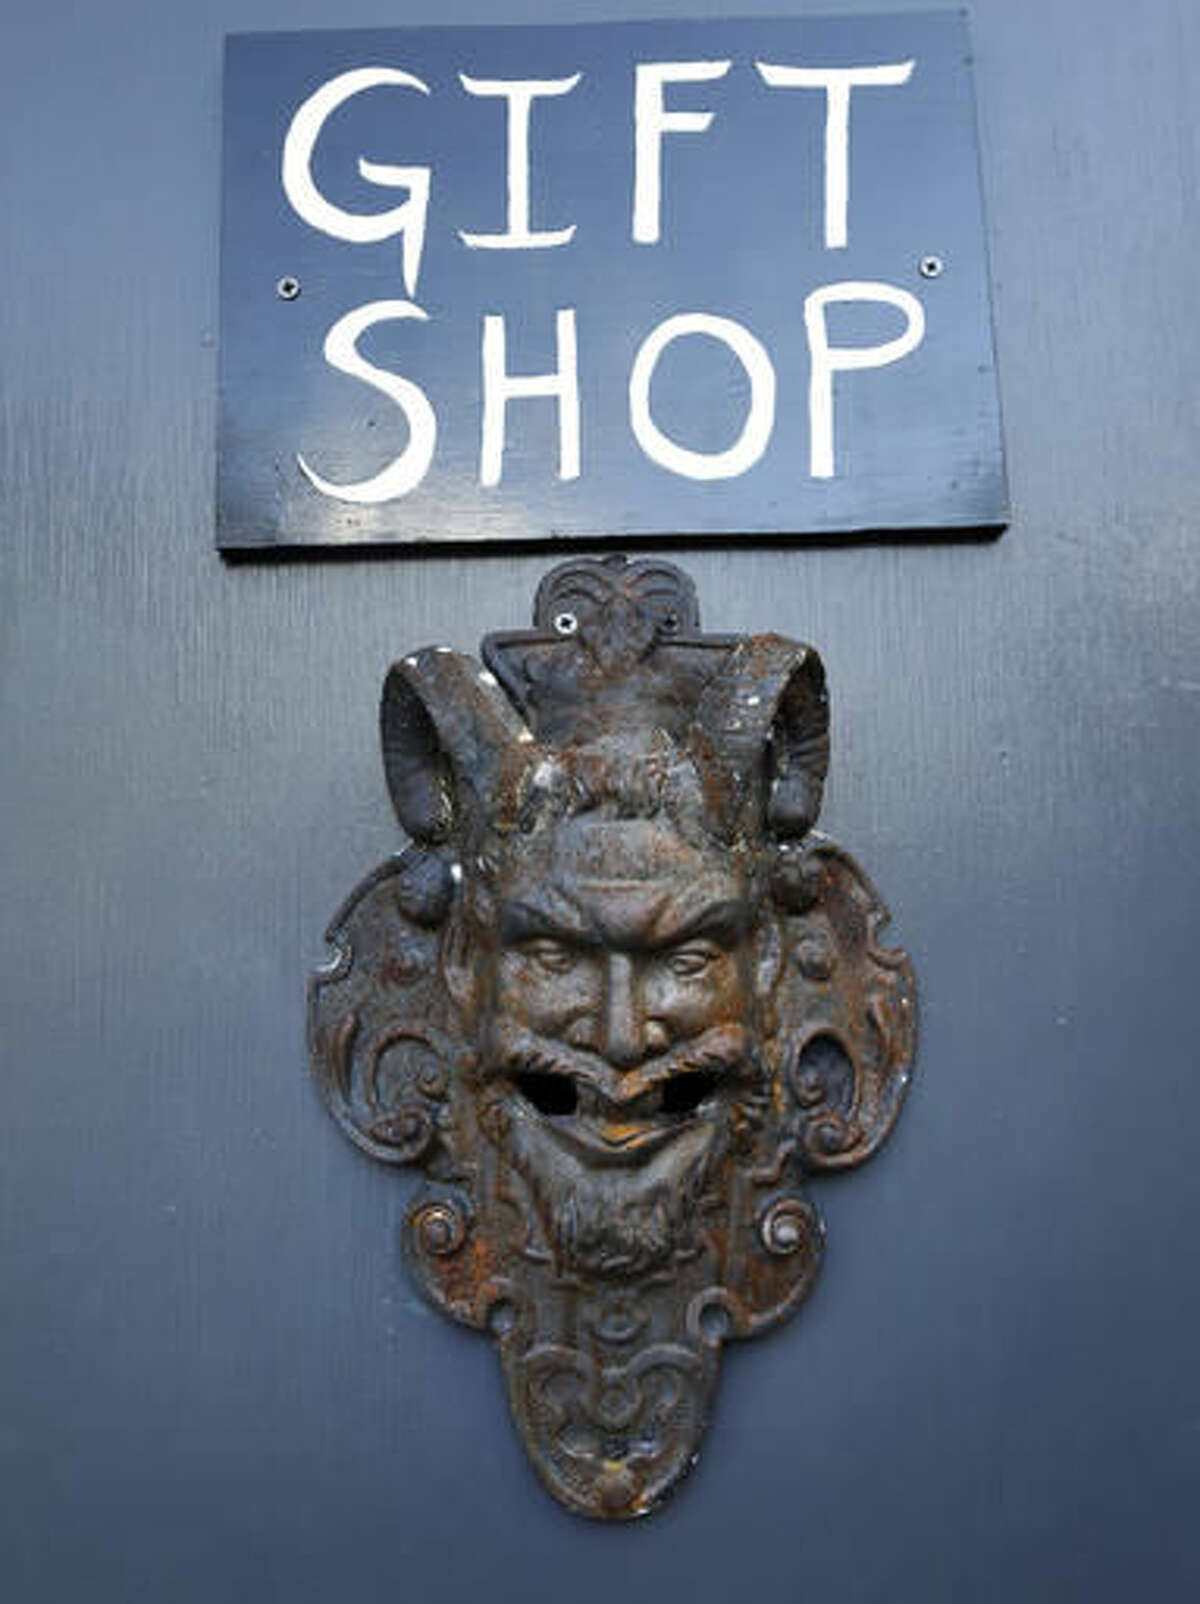 """In this Oct. 24, 2016 photo, the gift shop door is seen at the recently opened international headquarters of the Satanic Temple in Salem, Mass. The Satanic Temple is waging religious battles along a variety of fronts nationwide, and its co-founder Lucien Greaves says it's just getting started. Greaves says the temple hopes to ensure Satanists """"have a place in the world"""" and that """"evangelical theocrats"""" don't monopolize the religious freedom debate. (AP Photo/Elise Amendola)"""